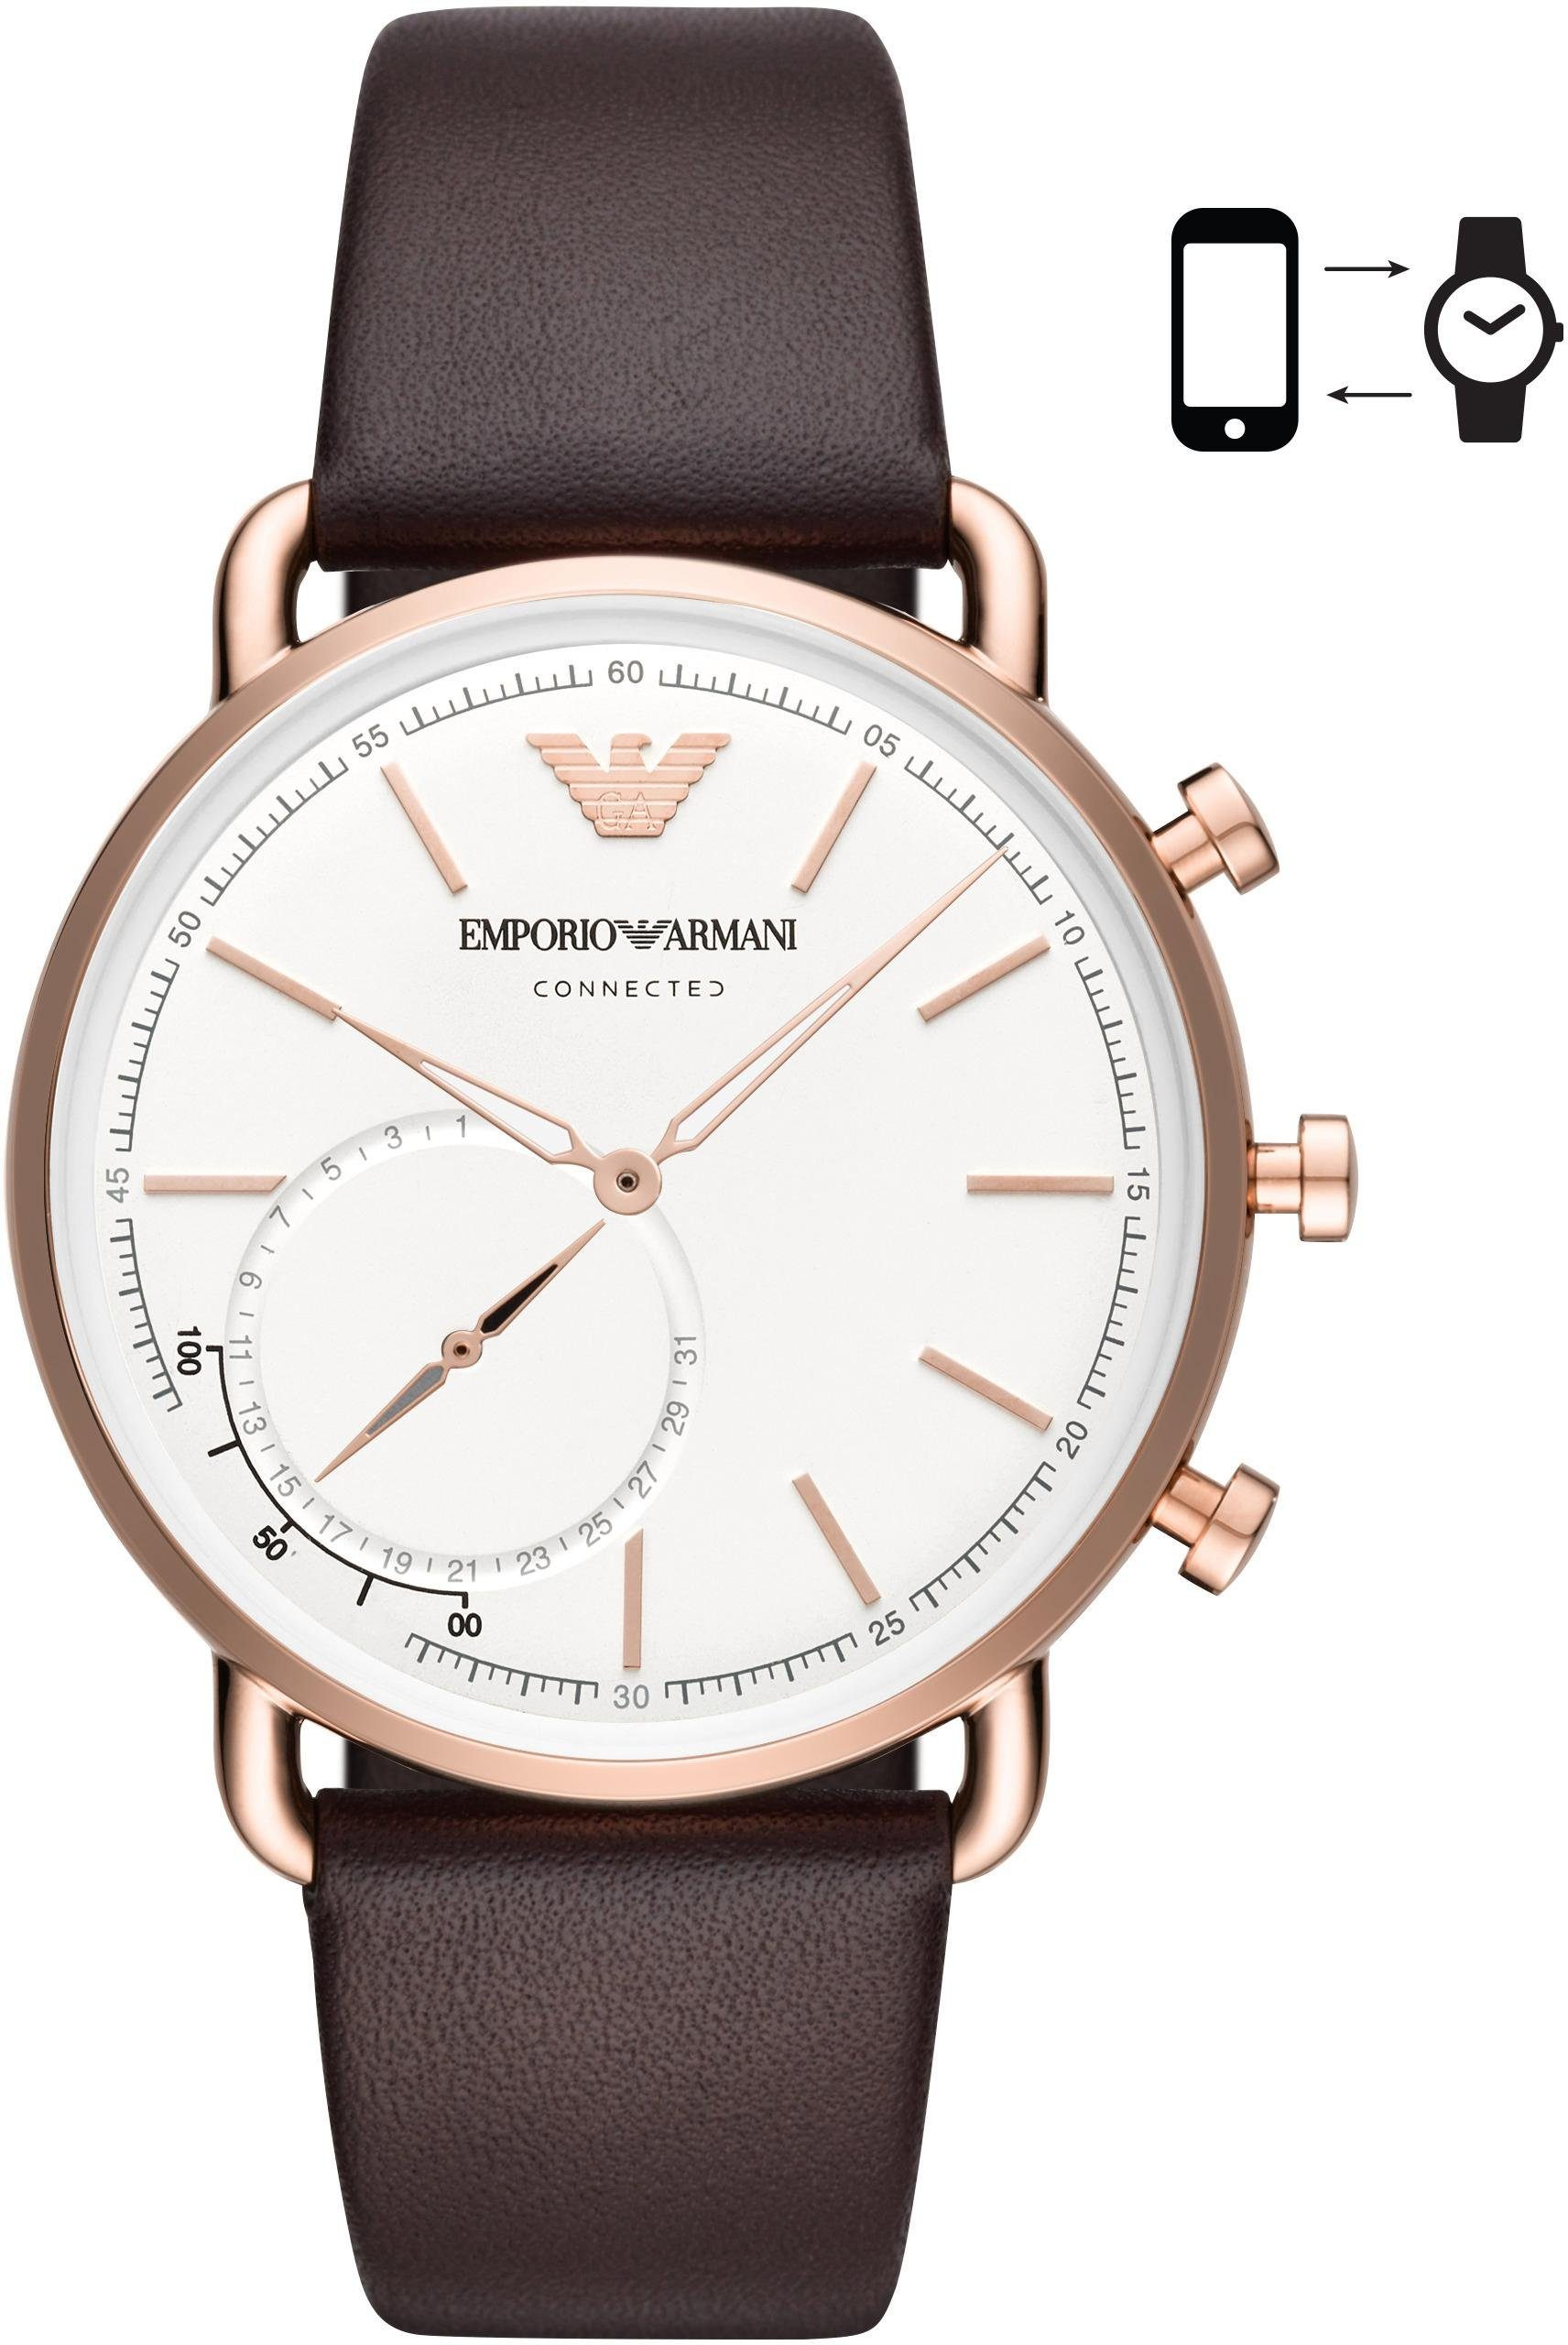 EMPORIO ARMANI CONNECTED ART3029 Smartwatch